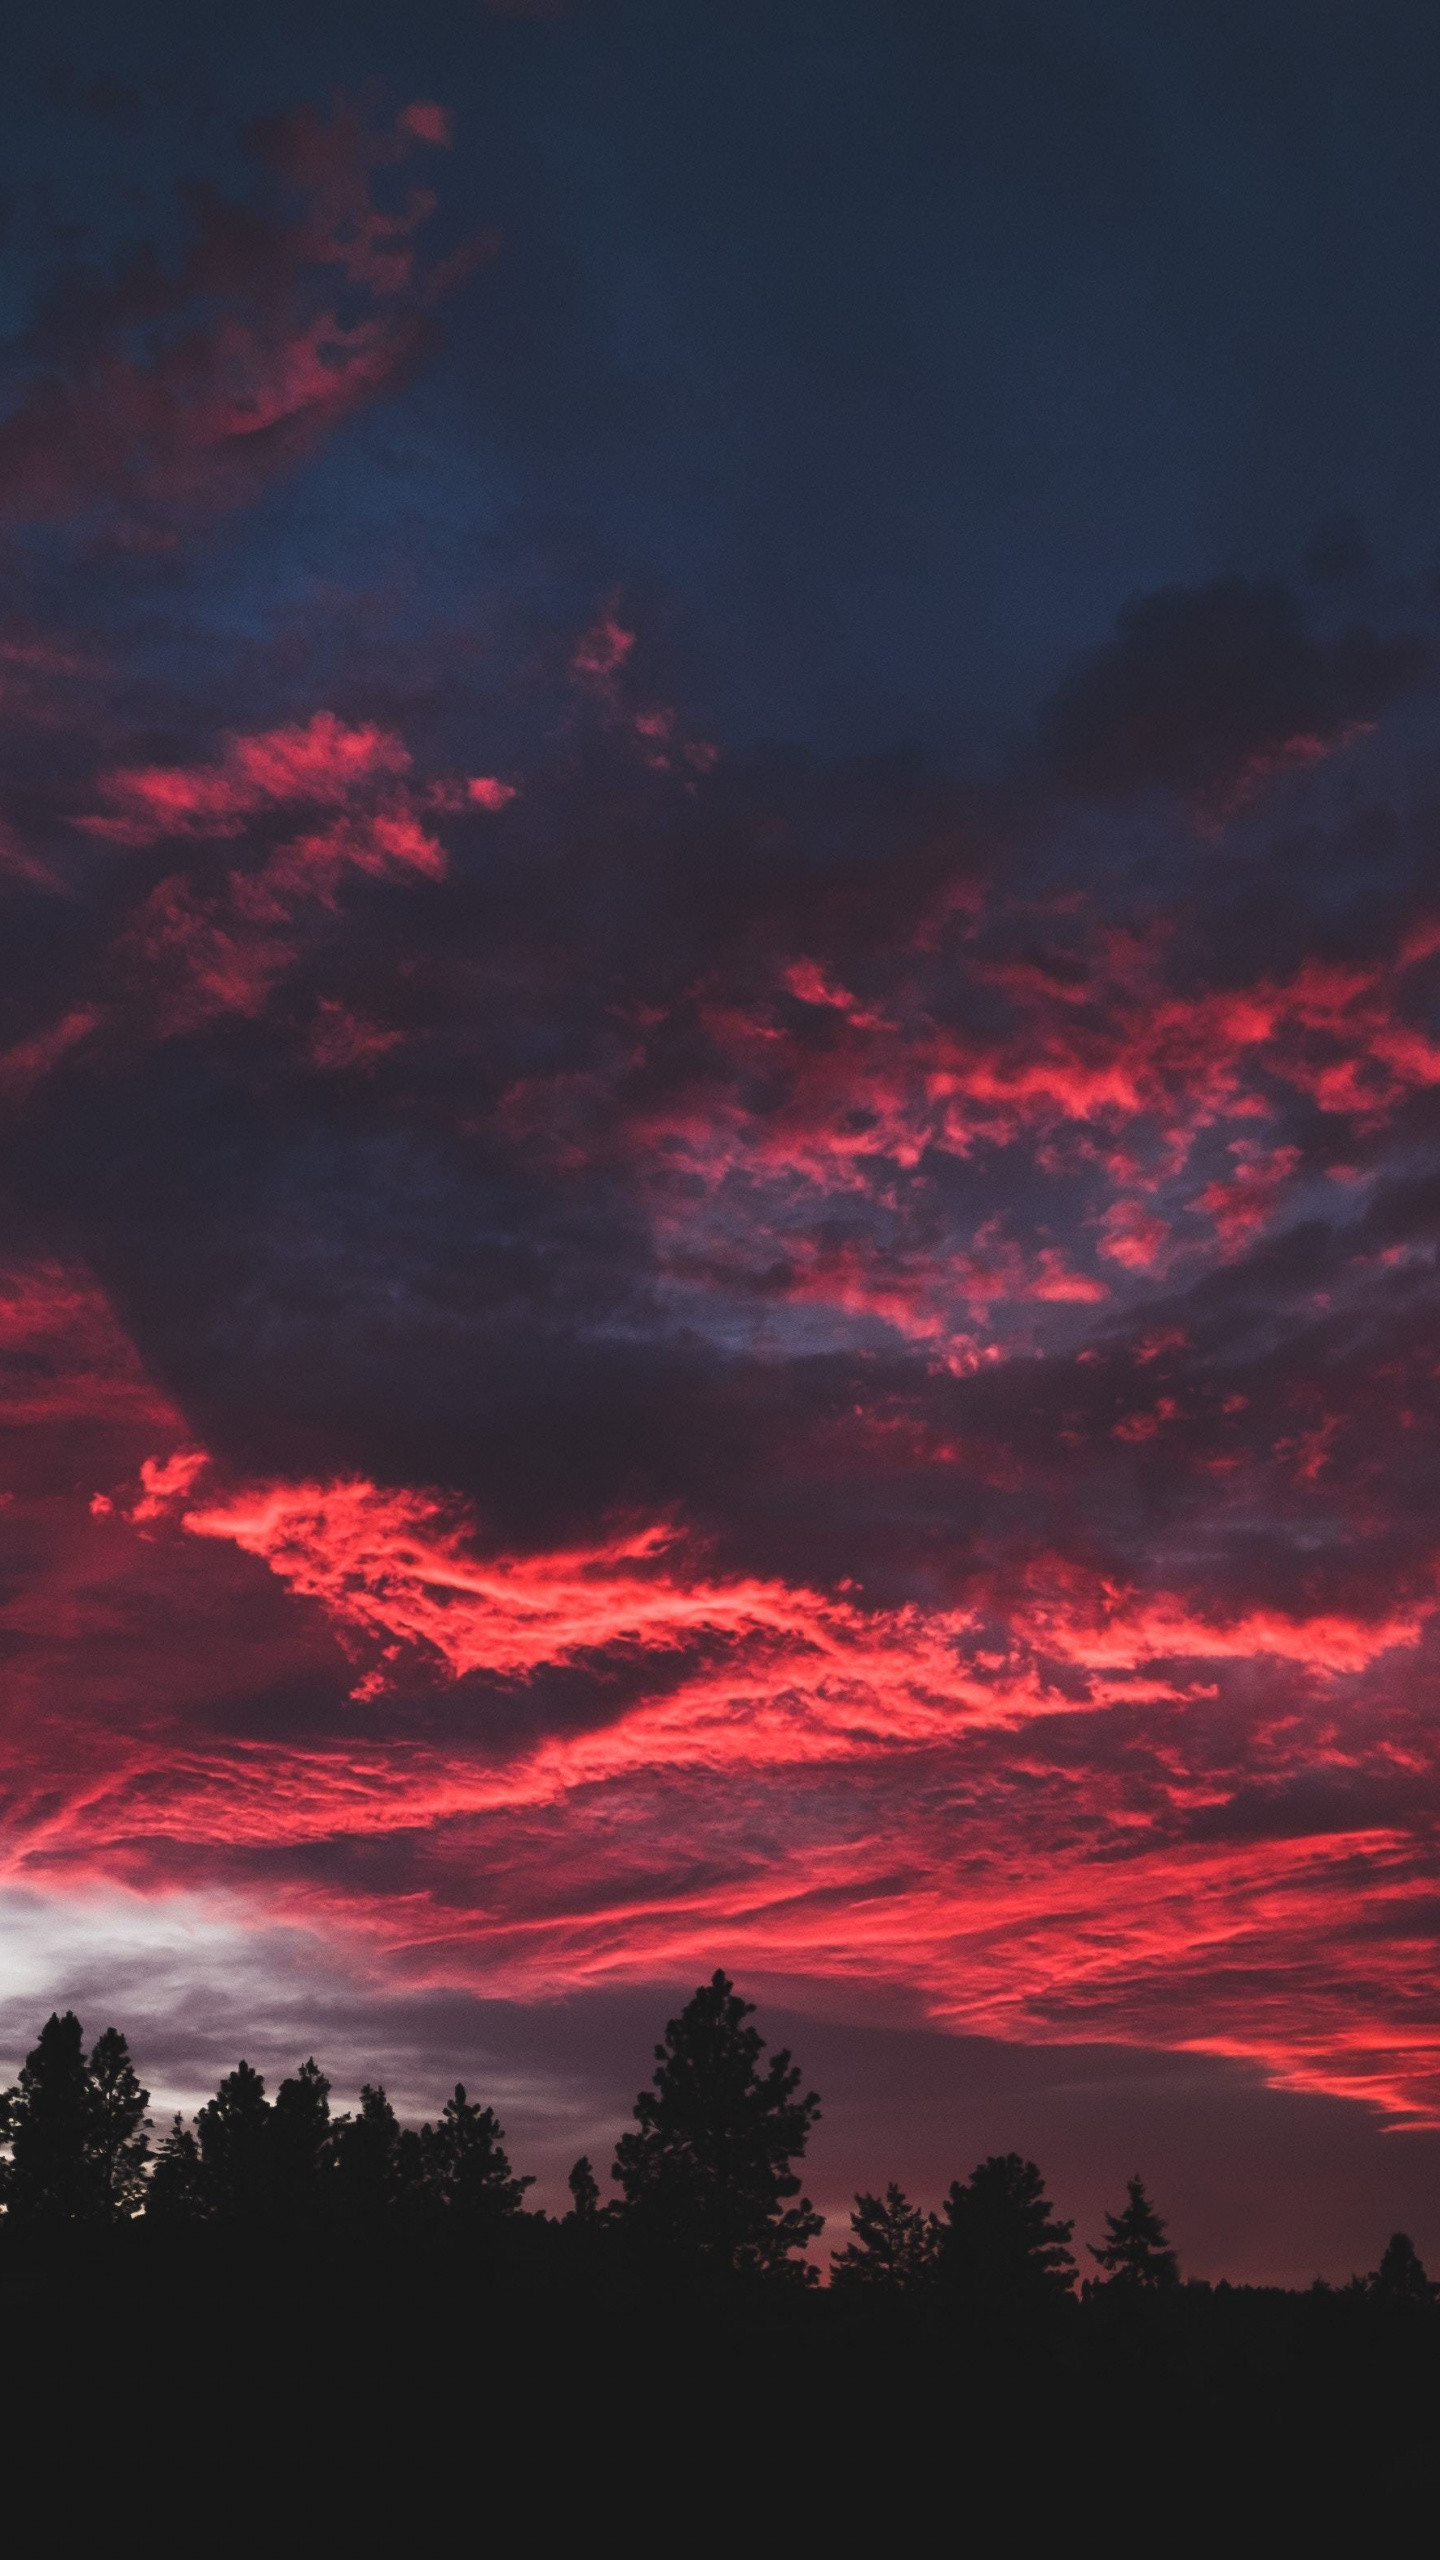 1440x2560 Download  wallpaper colorful, clouds, sunset, dark, tree, qhd  samsung galaxy s6, s7, edge, note, lg g4,  hd image, background,  2386